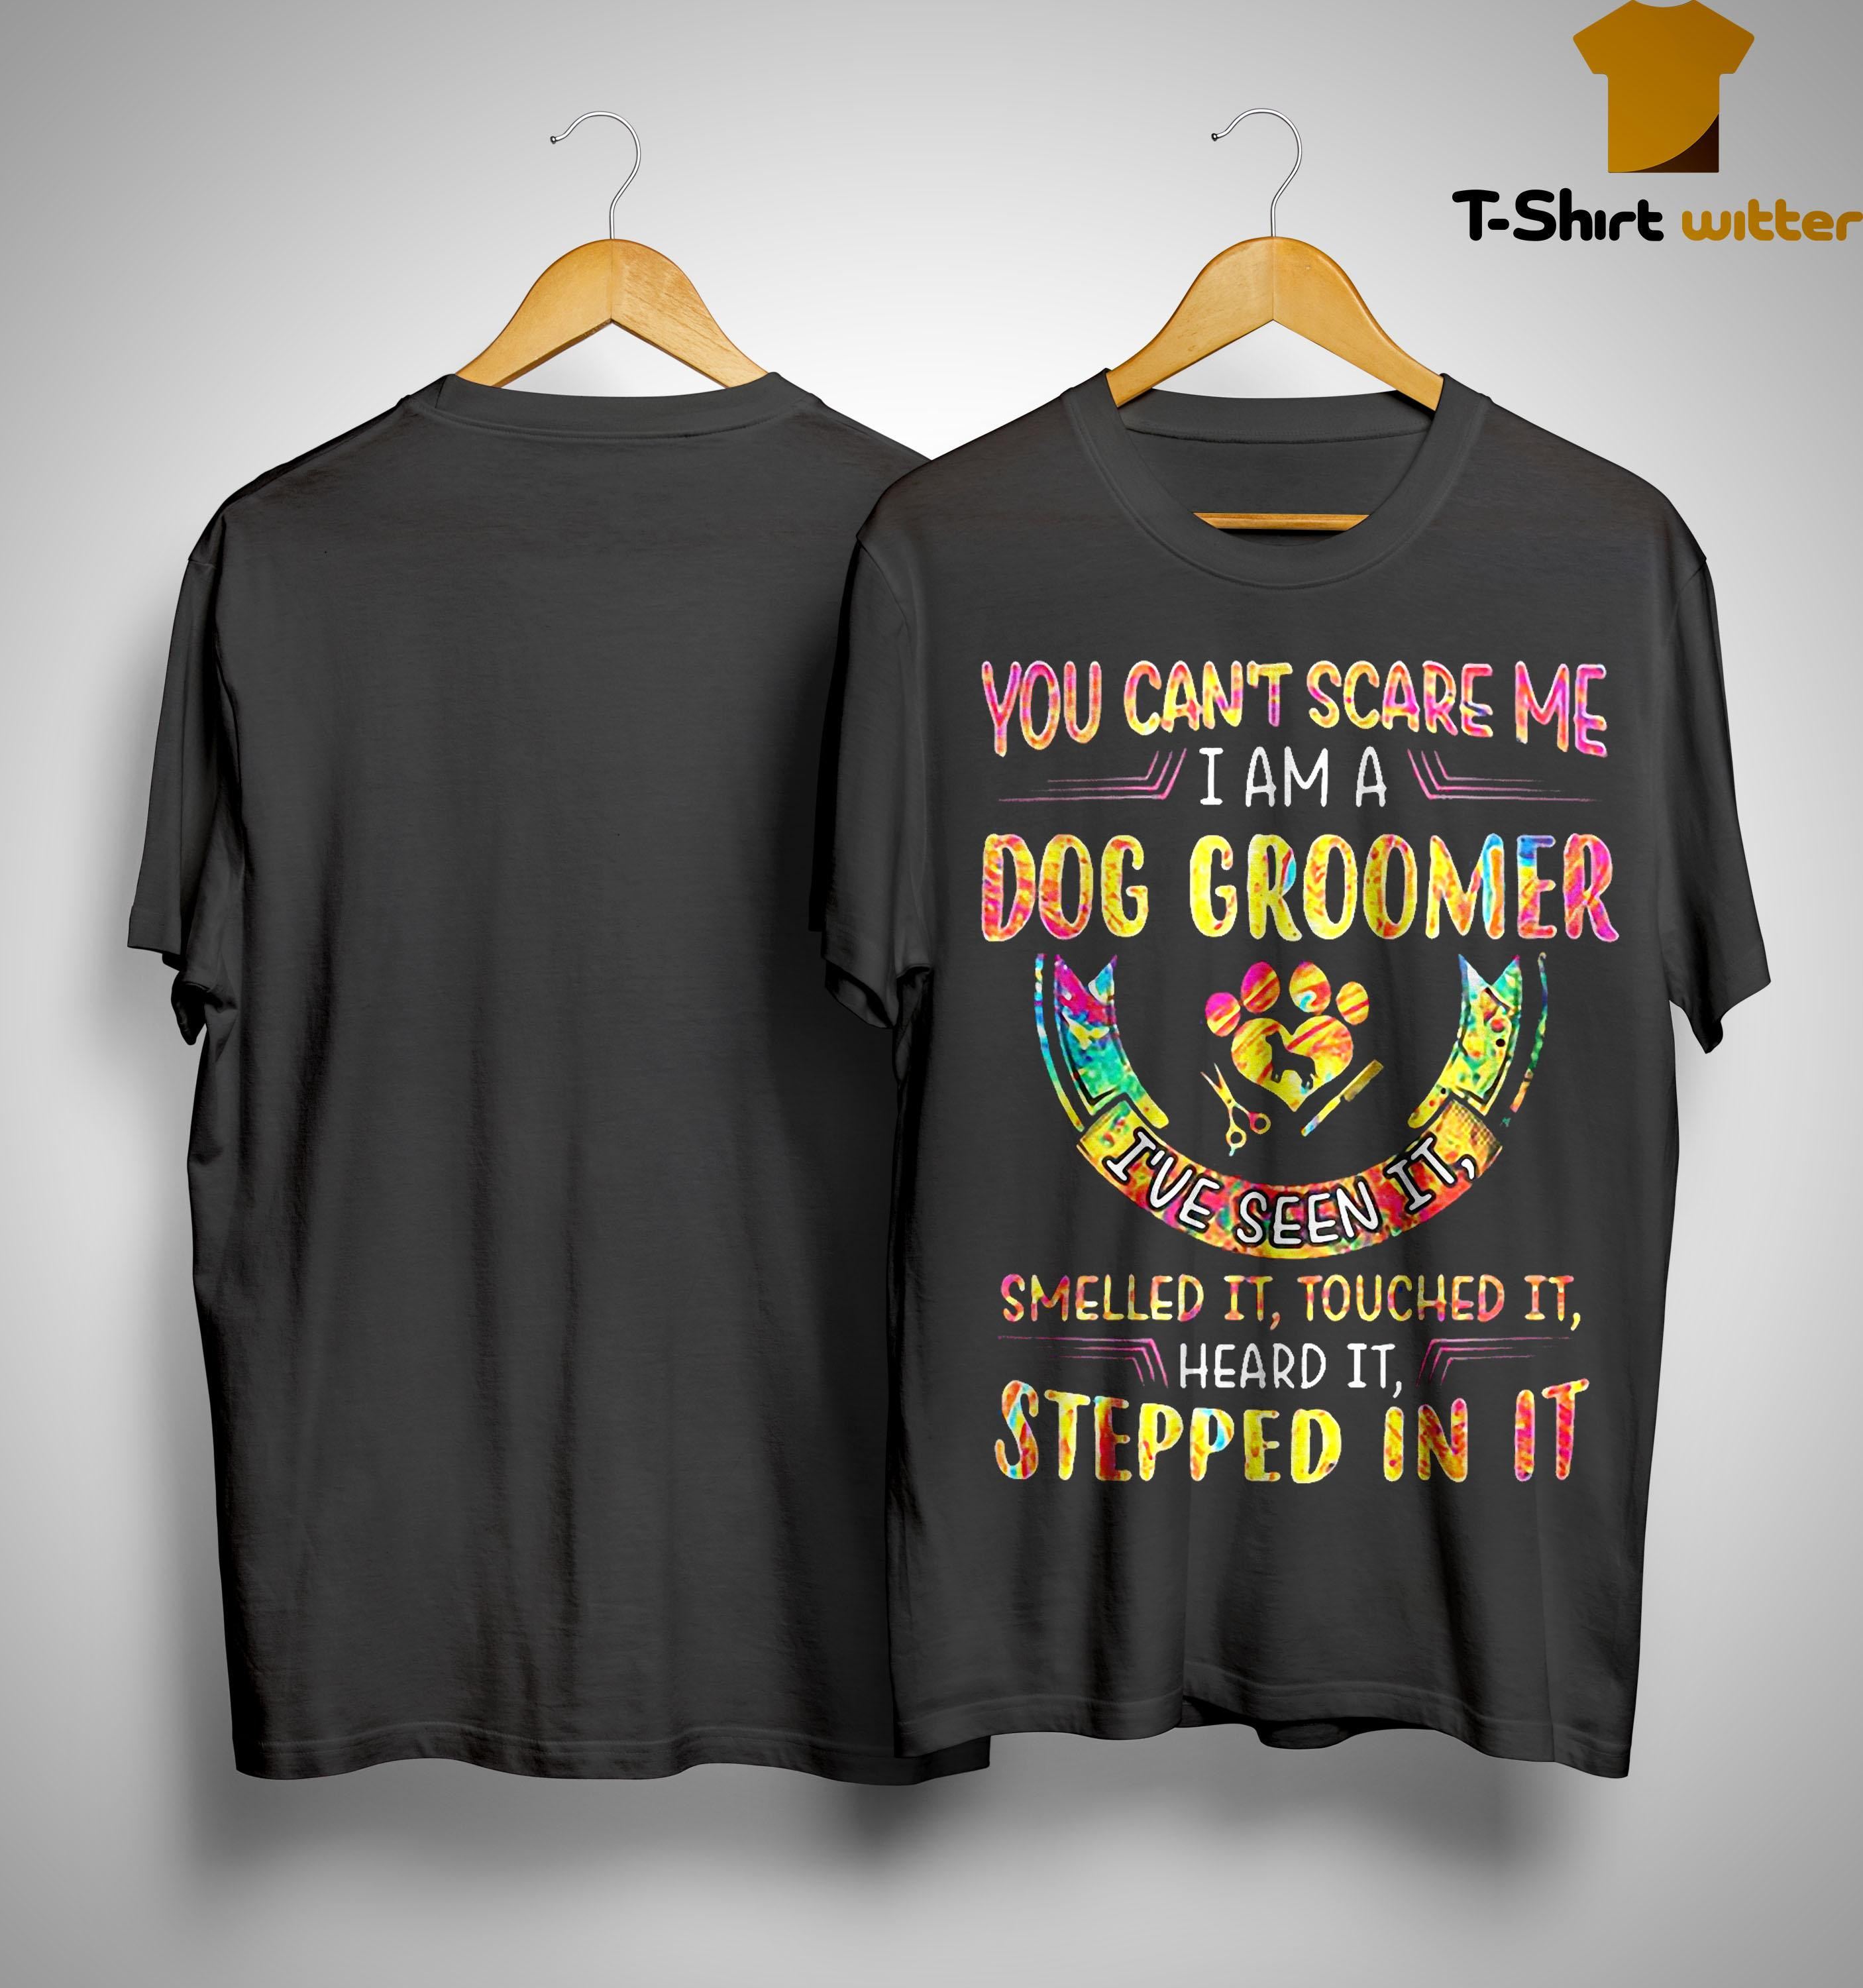 You Can't Scare Me I Am A Dog Groomer I've Seen It Smelled It Touched It Shirt